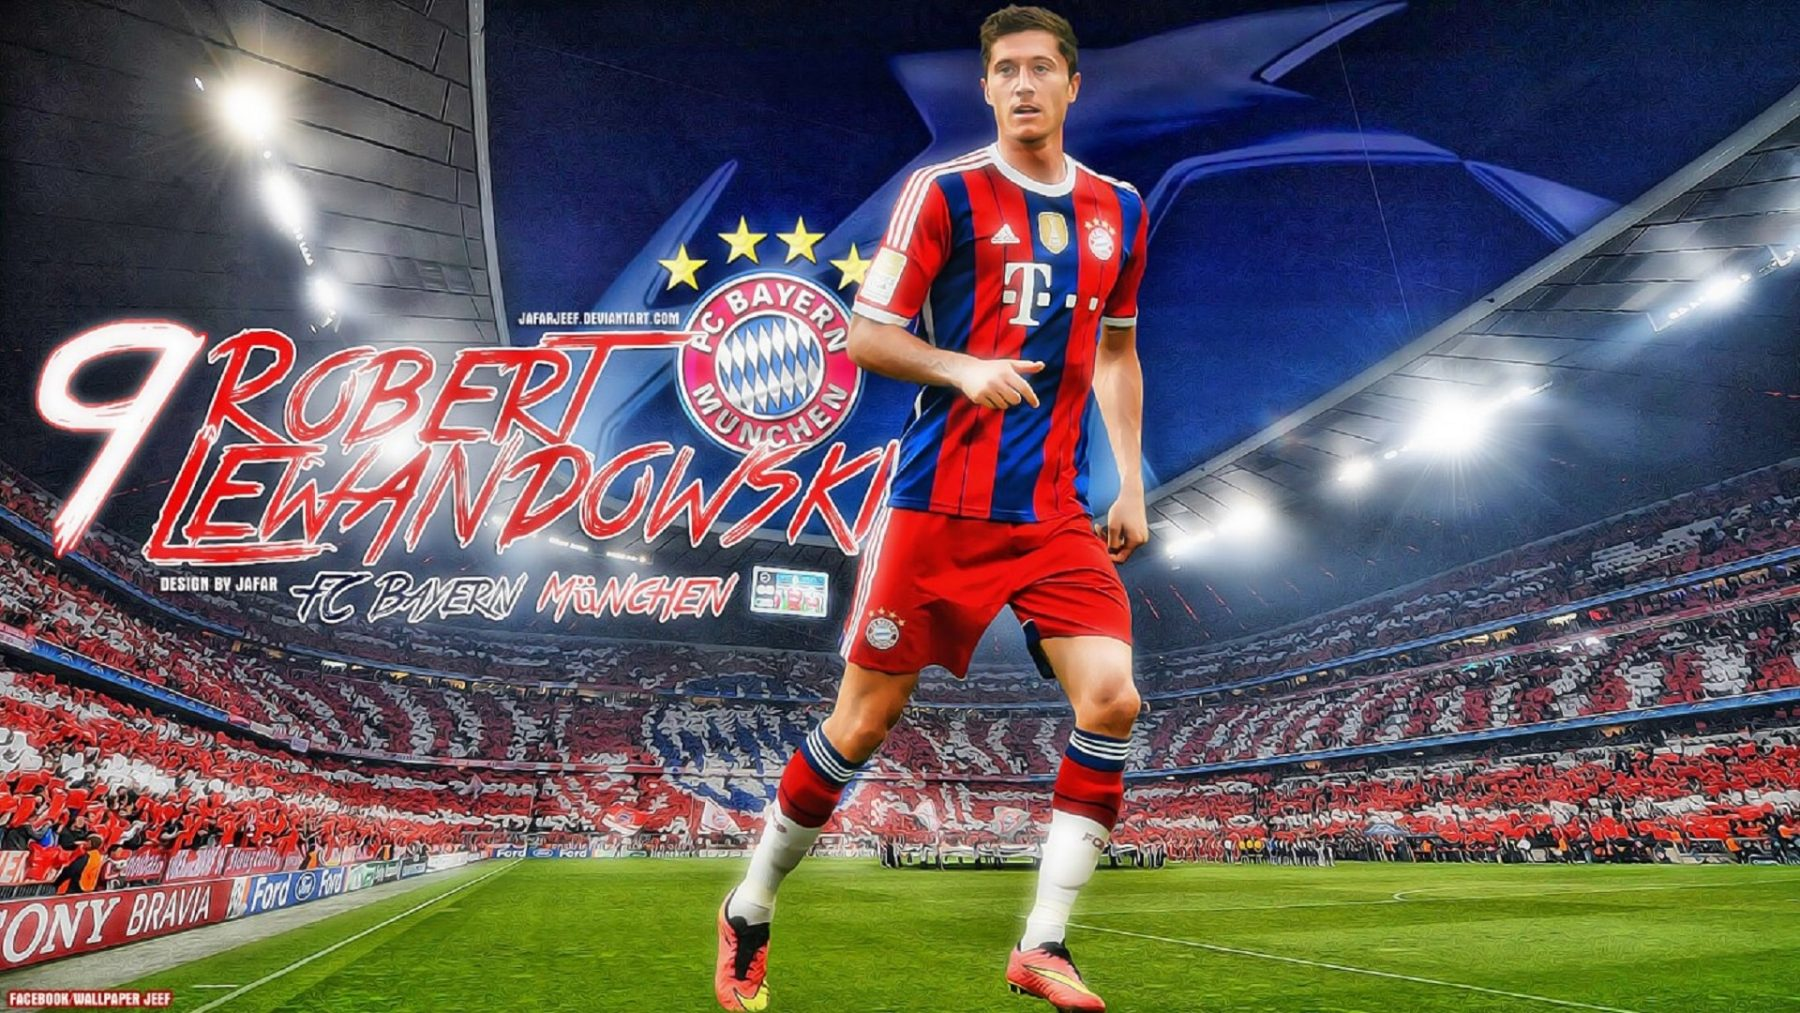 Robert Lewandowski HD Wallpapers | 7wallpapers.net